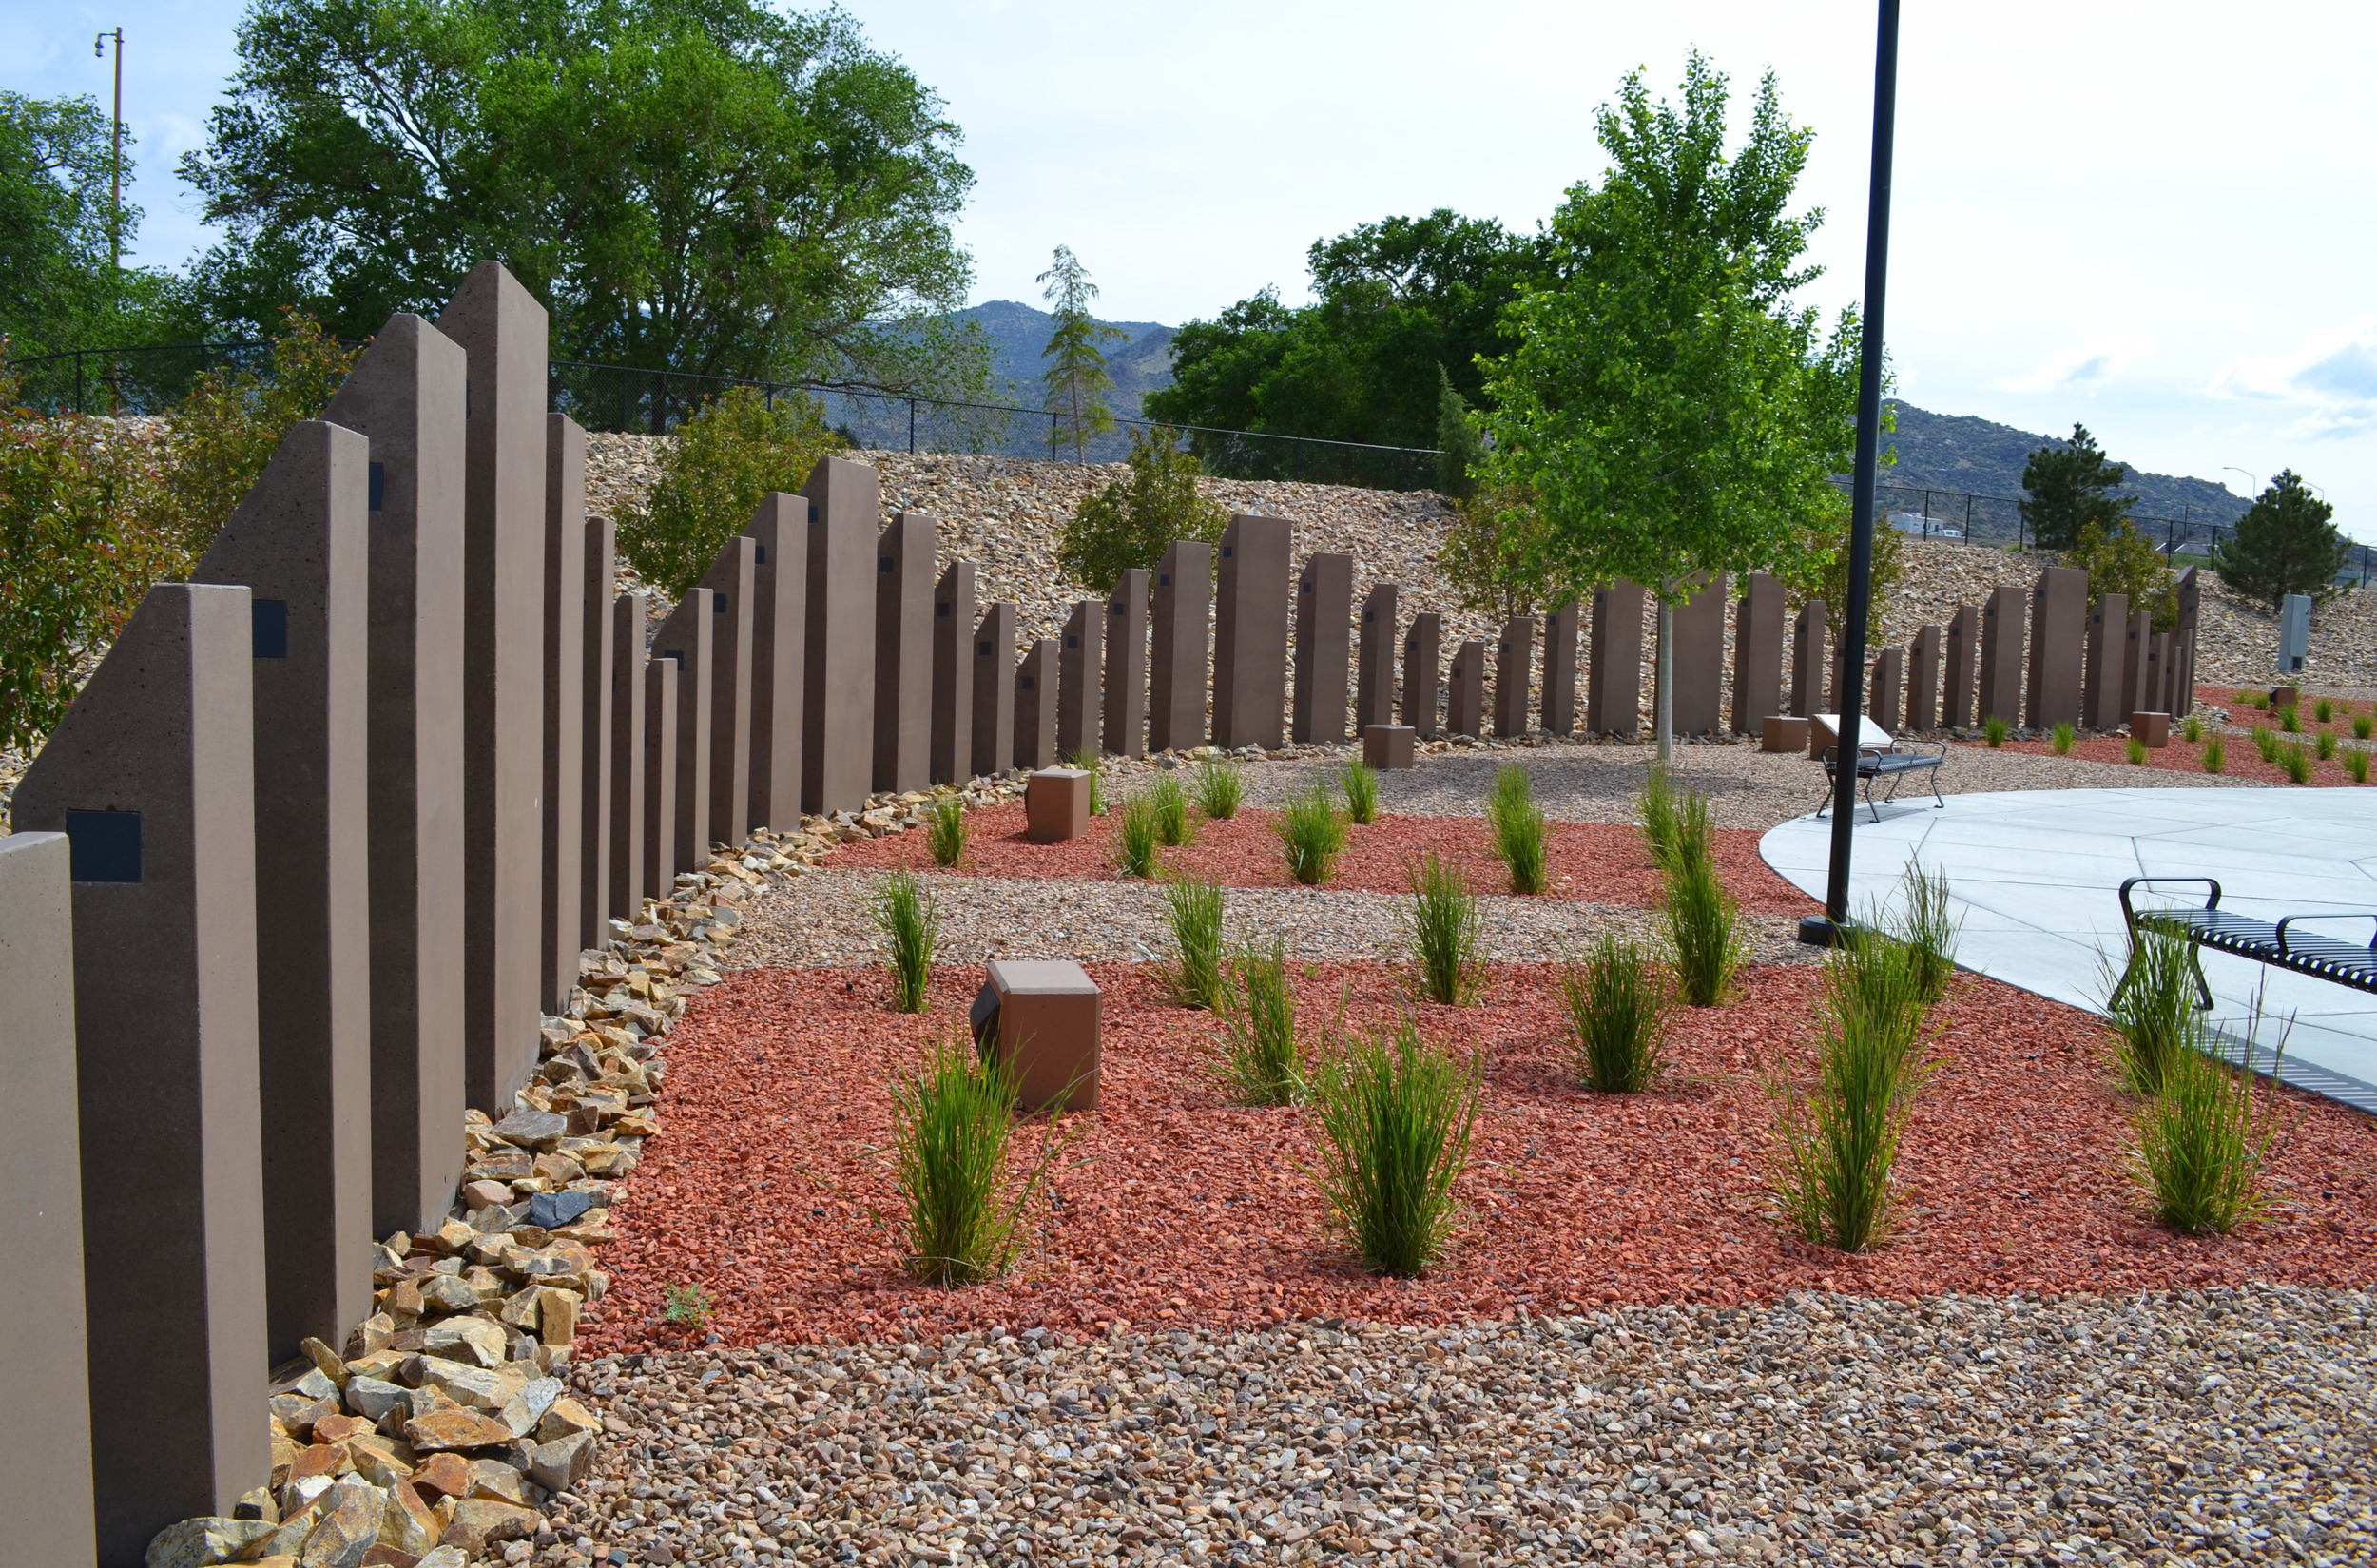 patterns in stone ground cover accented by drought tolerant plants